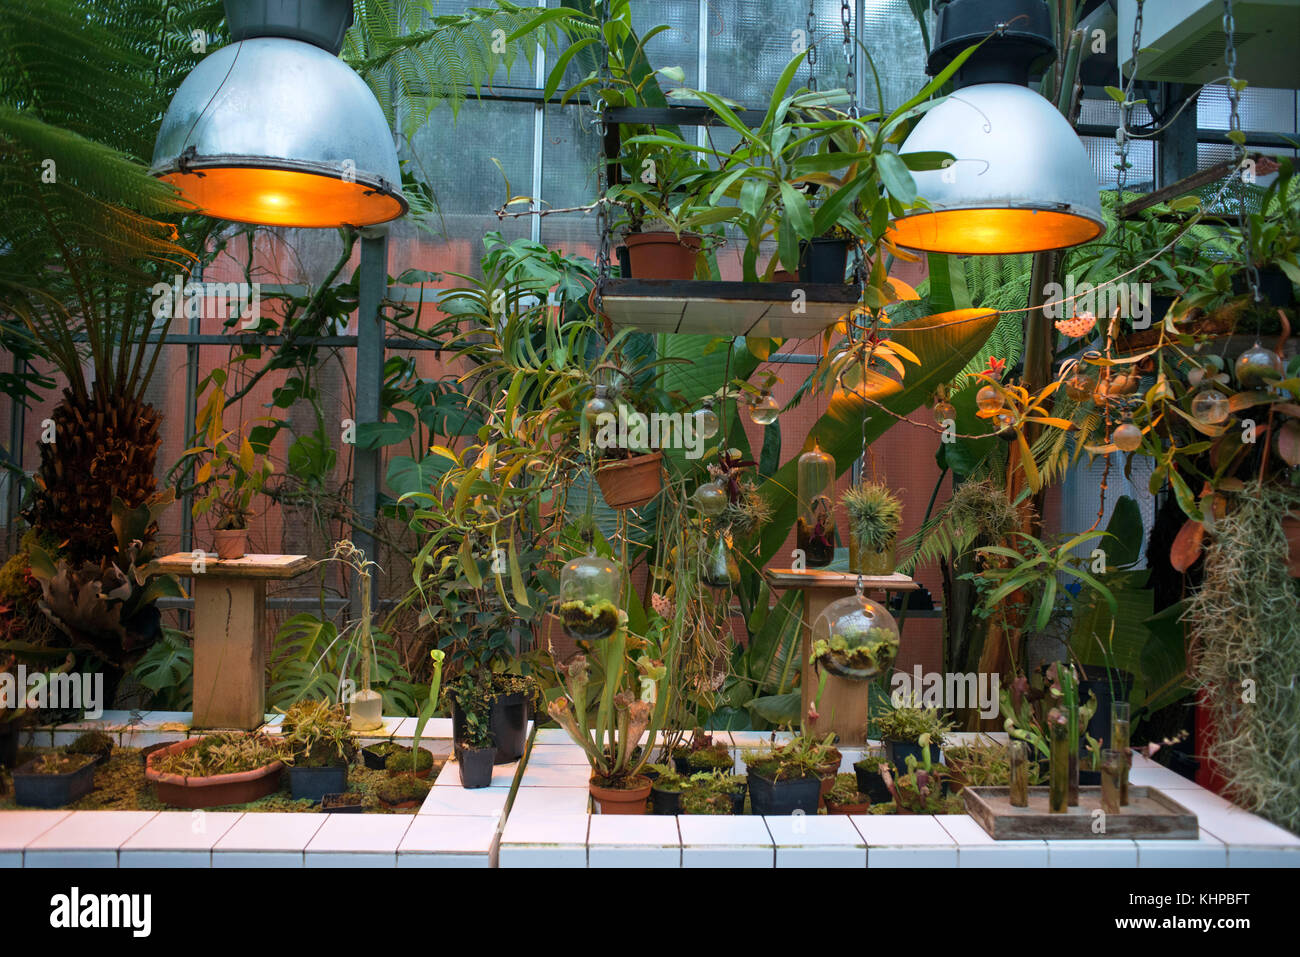 Giant Greenhouse Stock Photos & Giant Greenhouse Stock Images - Alamy